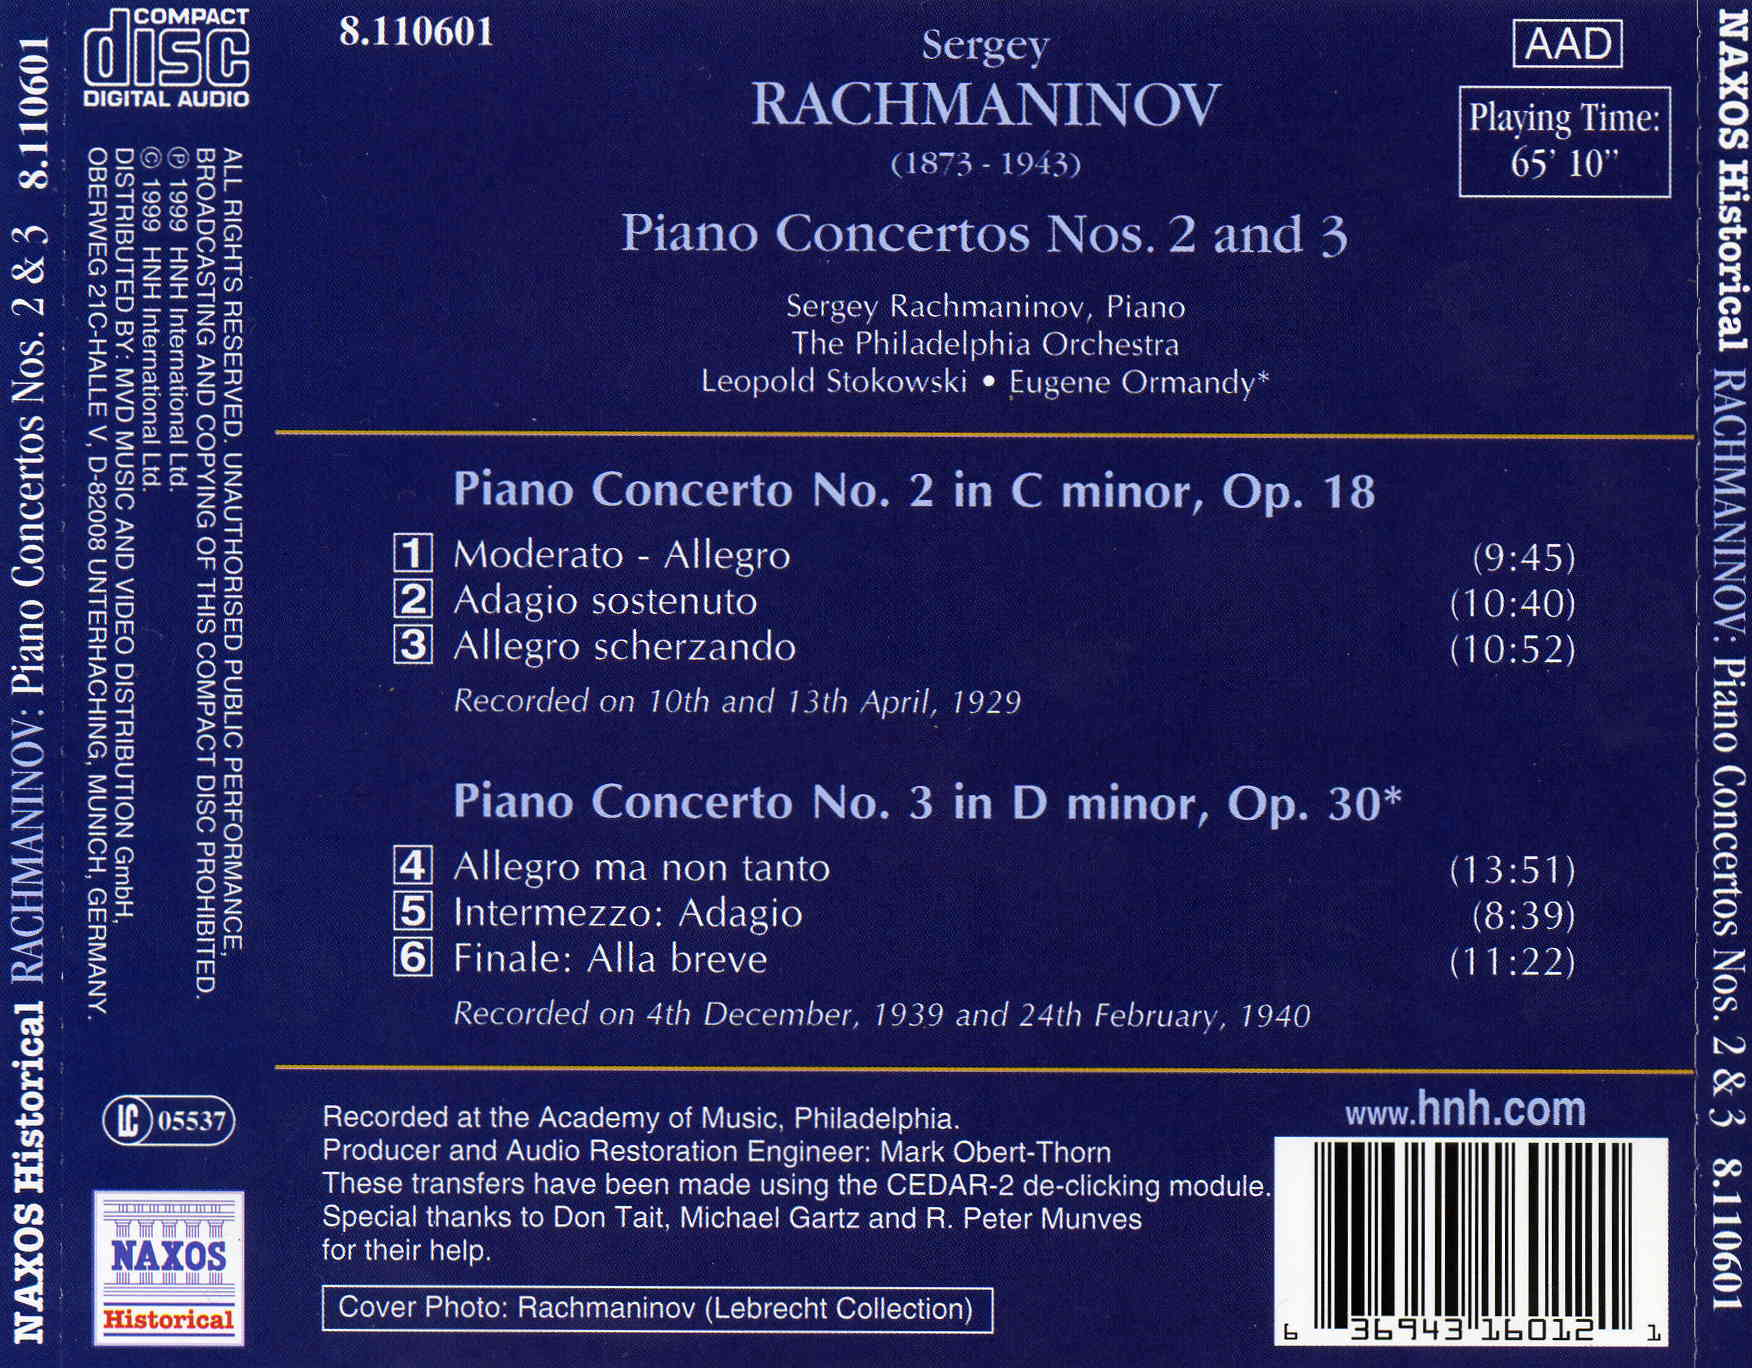 Rachmaninov - Piano Concertos Nos. 2 and 3/historical recordings/my rip MP3 LAME @320kbps/144.73 MB/covers front,back and bookl